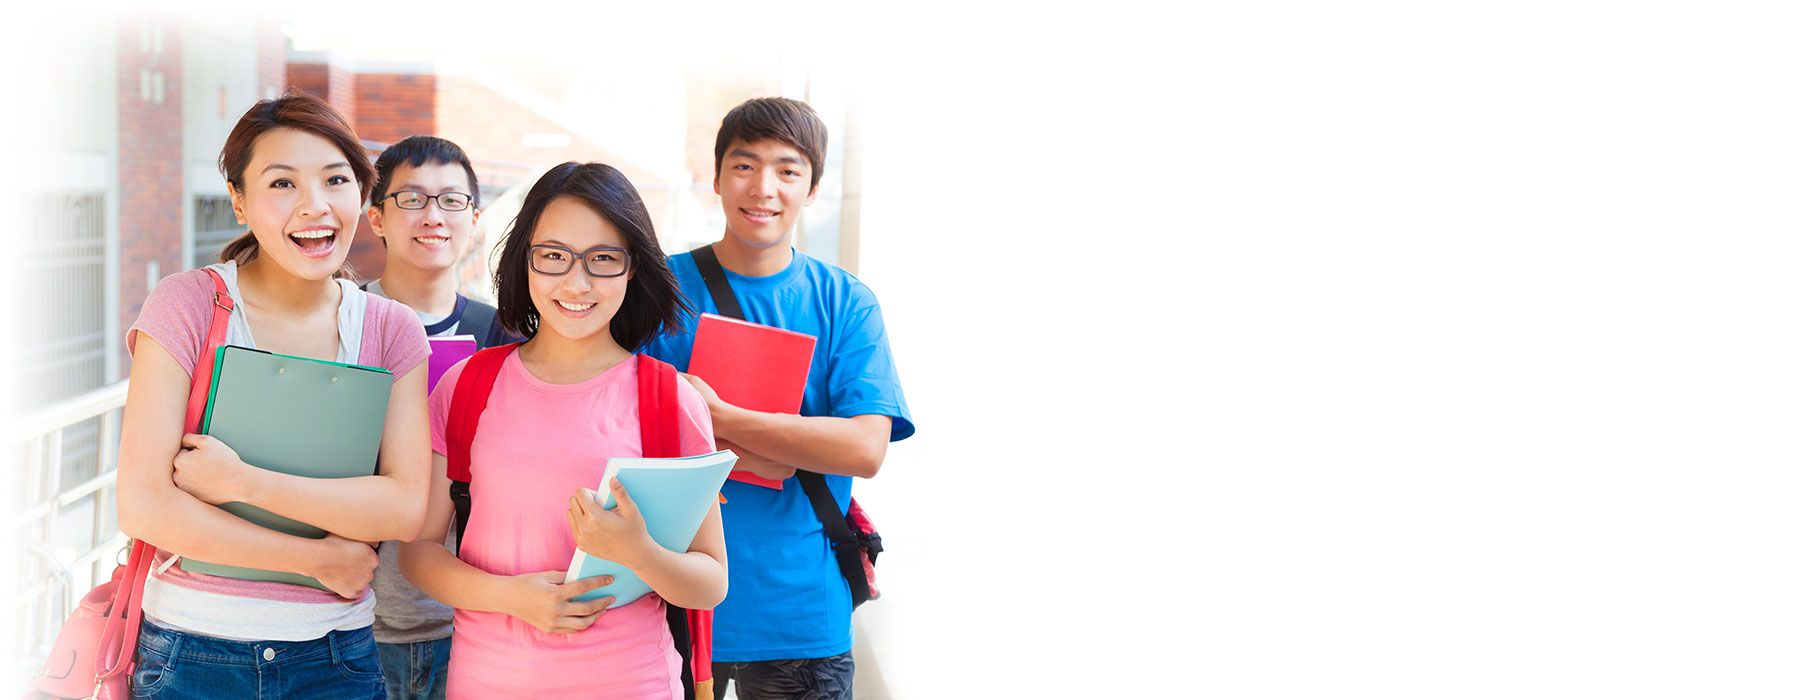 PTE Academic offered by DISTED College Penang Malaysia